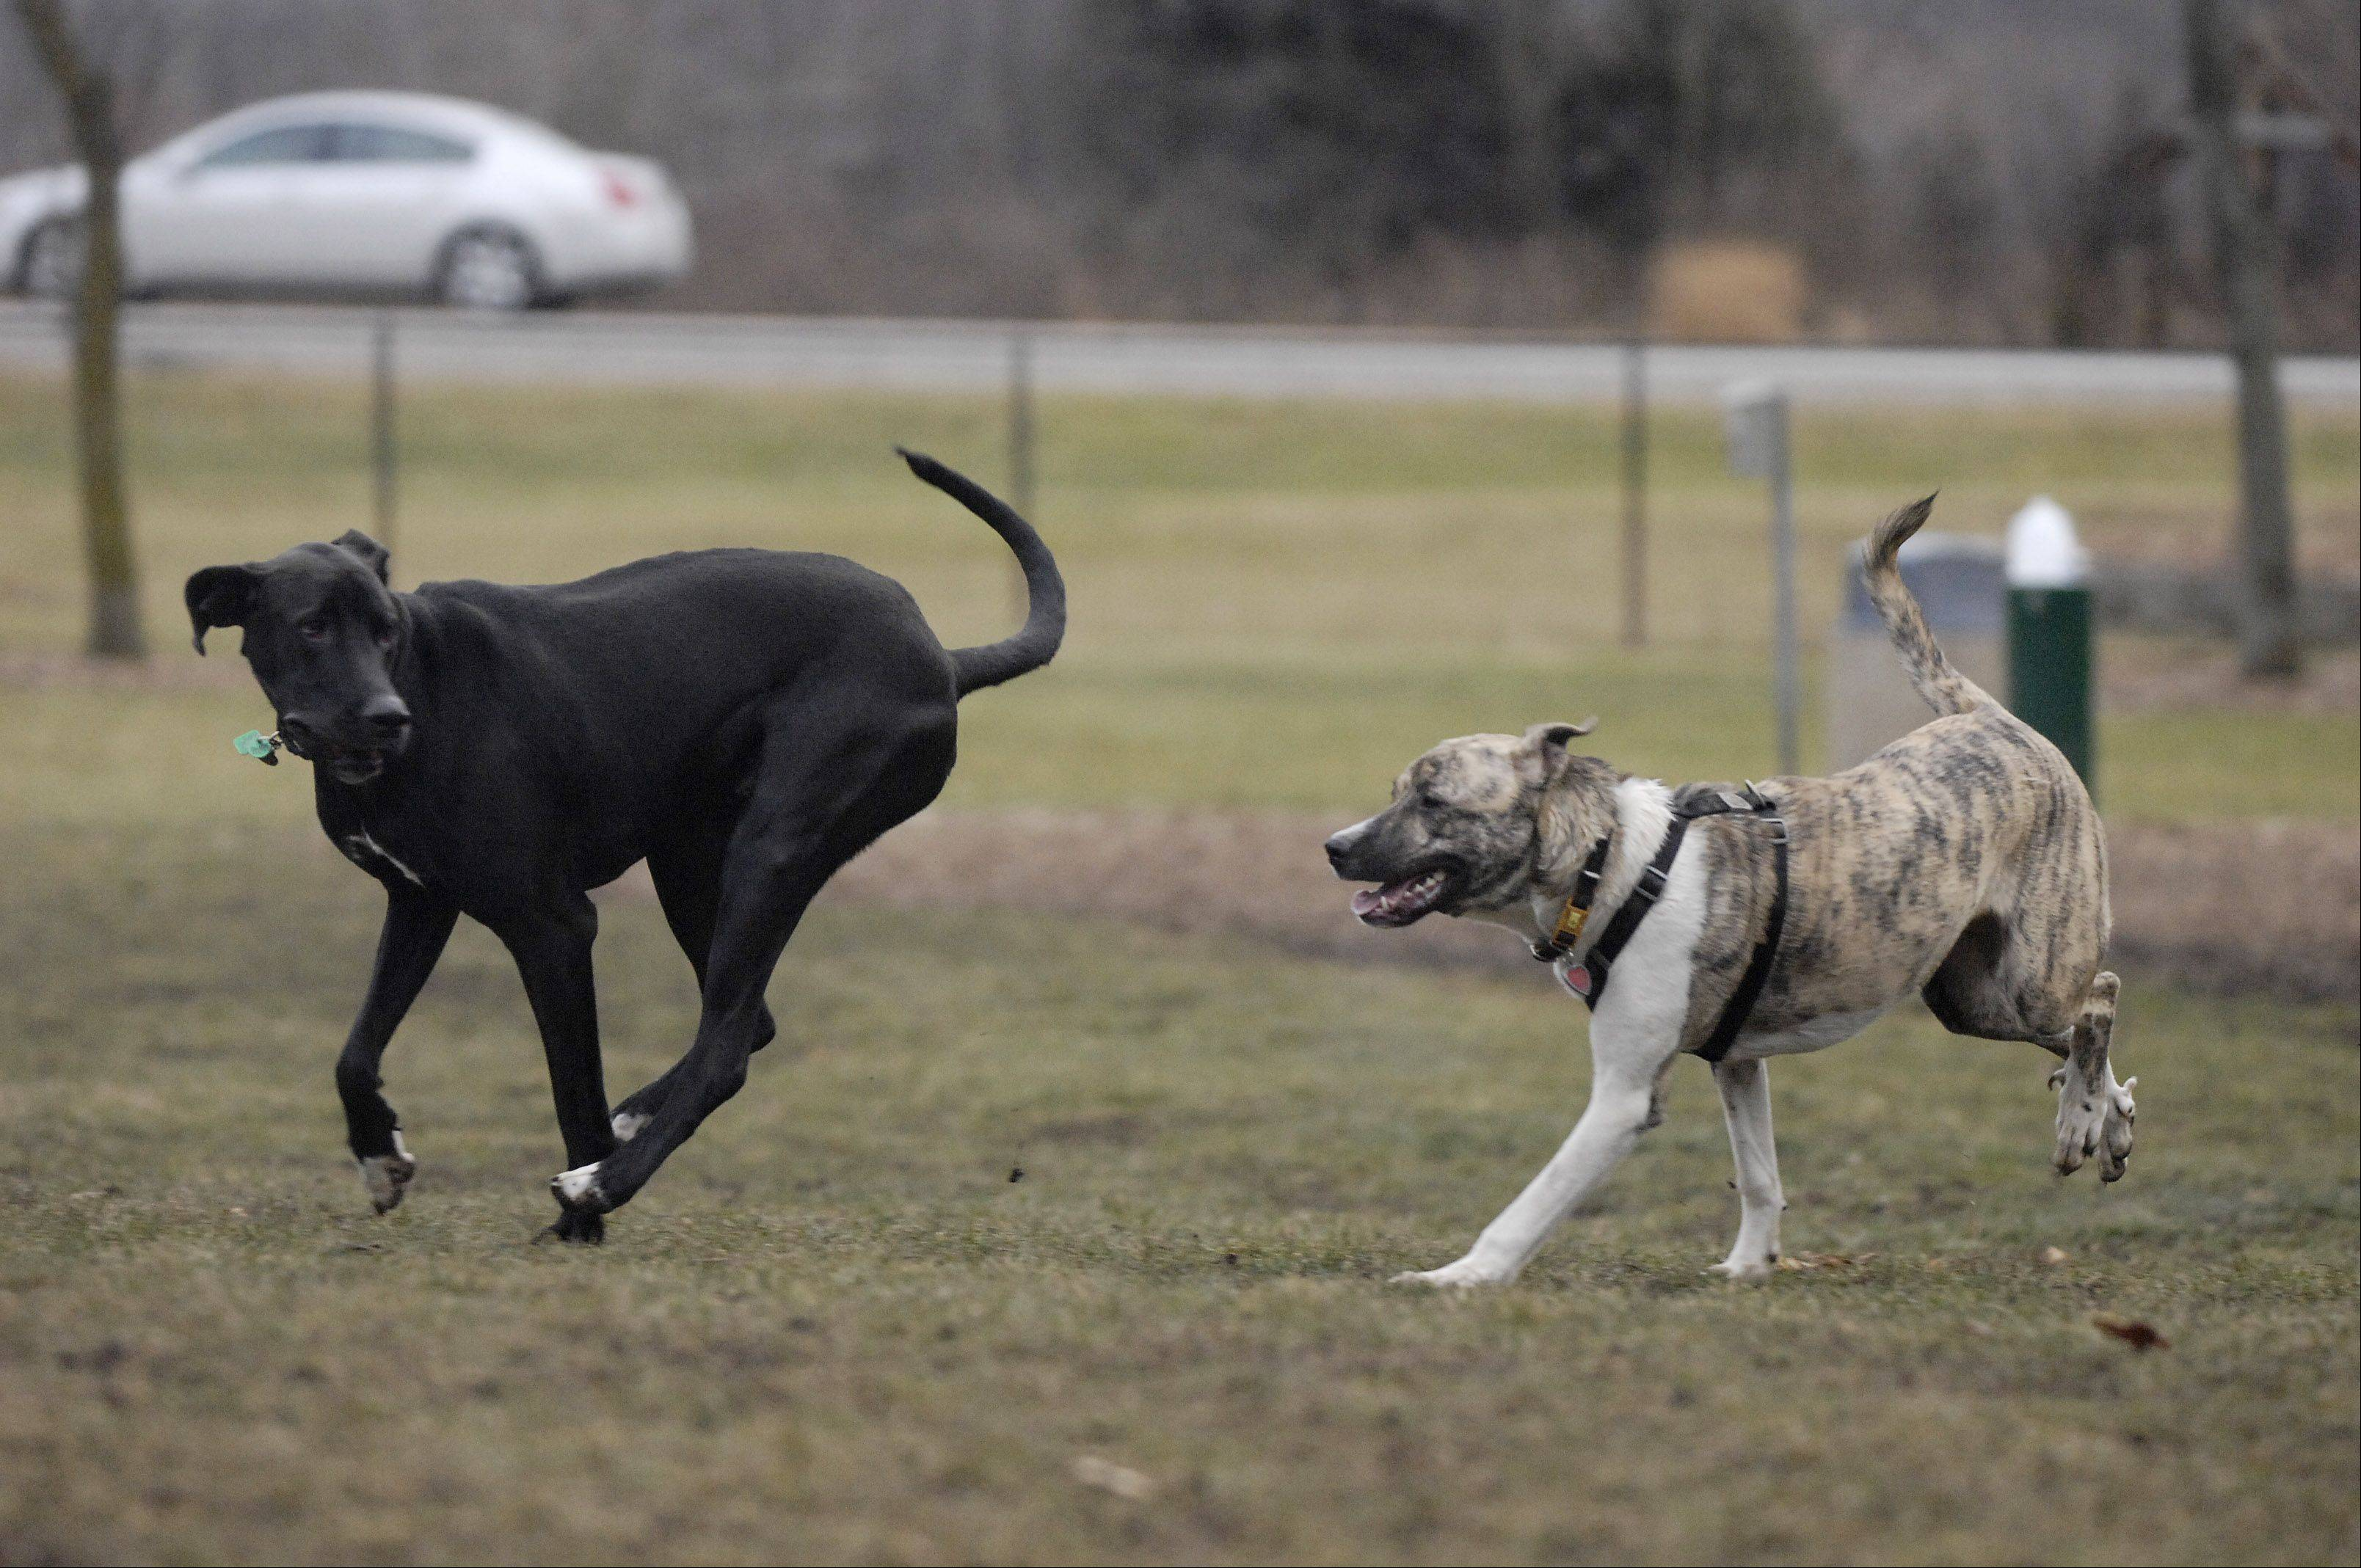 Reese and Lollee play Wednesday at Glen Ellyn Park District's dog park. The district plans to improve the site by totally enclosing the park and installing a swipe card system.